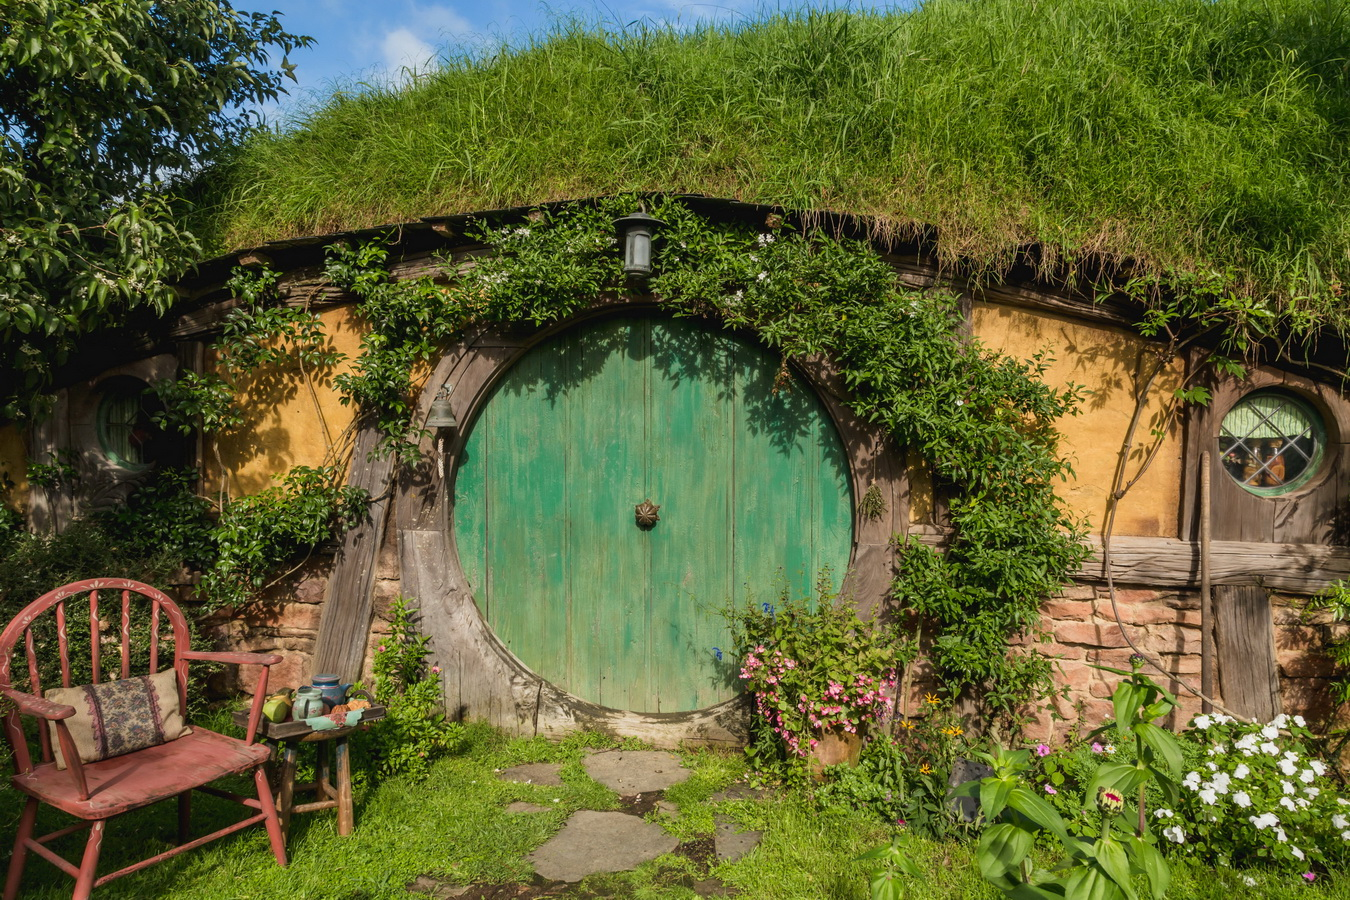 yellow house, green door,The Hobbiton, The Shire,Хоббитшир, Удел, Хоббитания, Заселье, Край,Matamata, North Island ,New Zealand